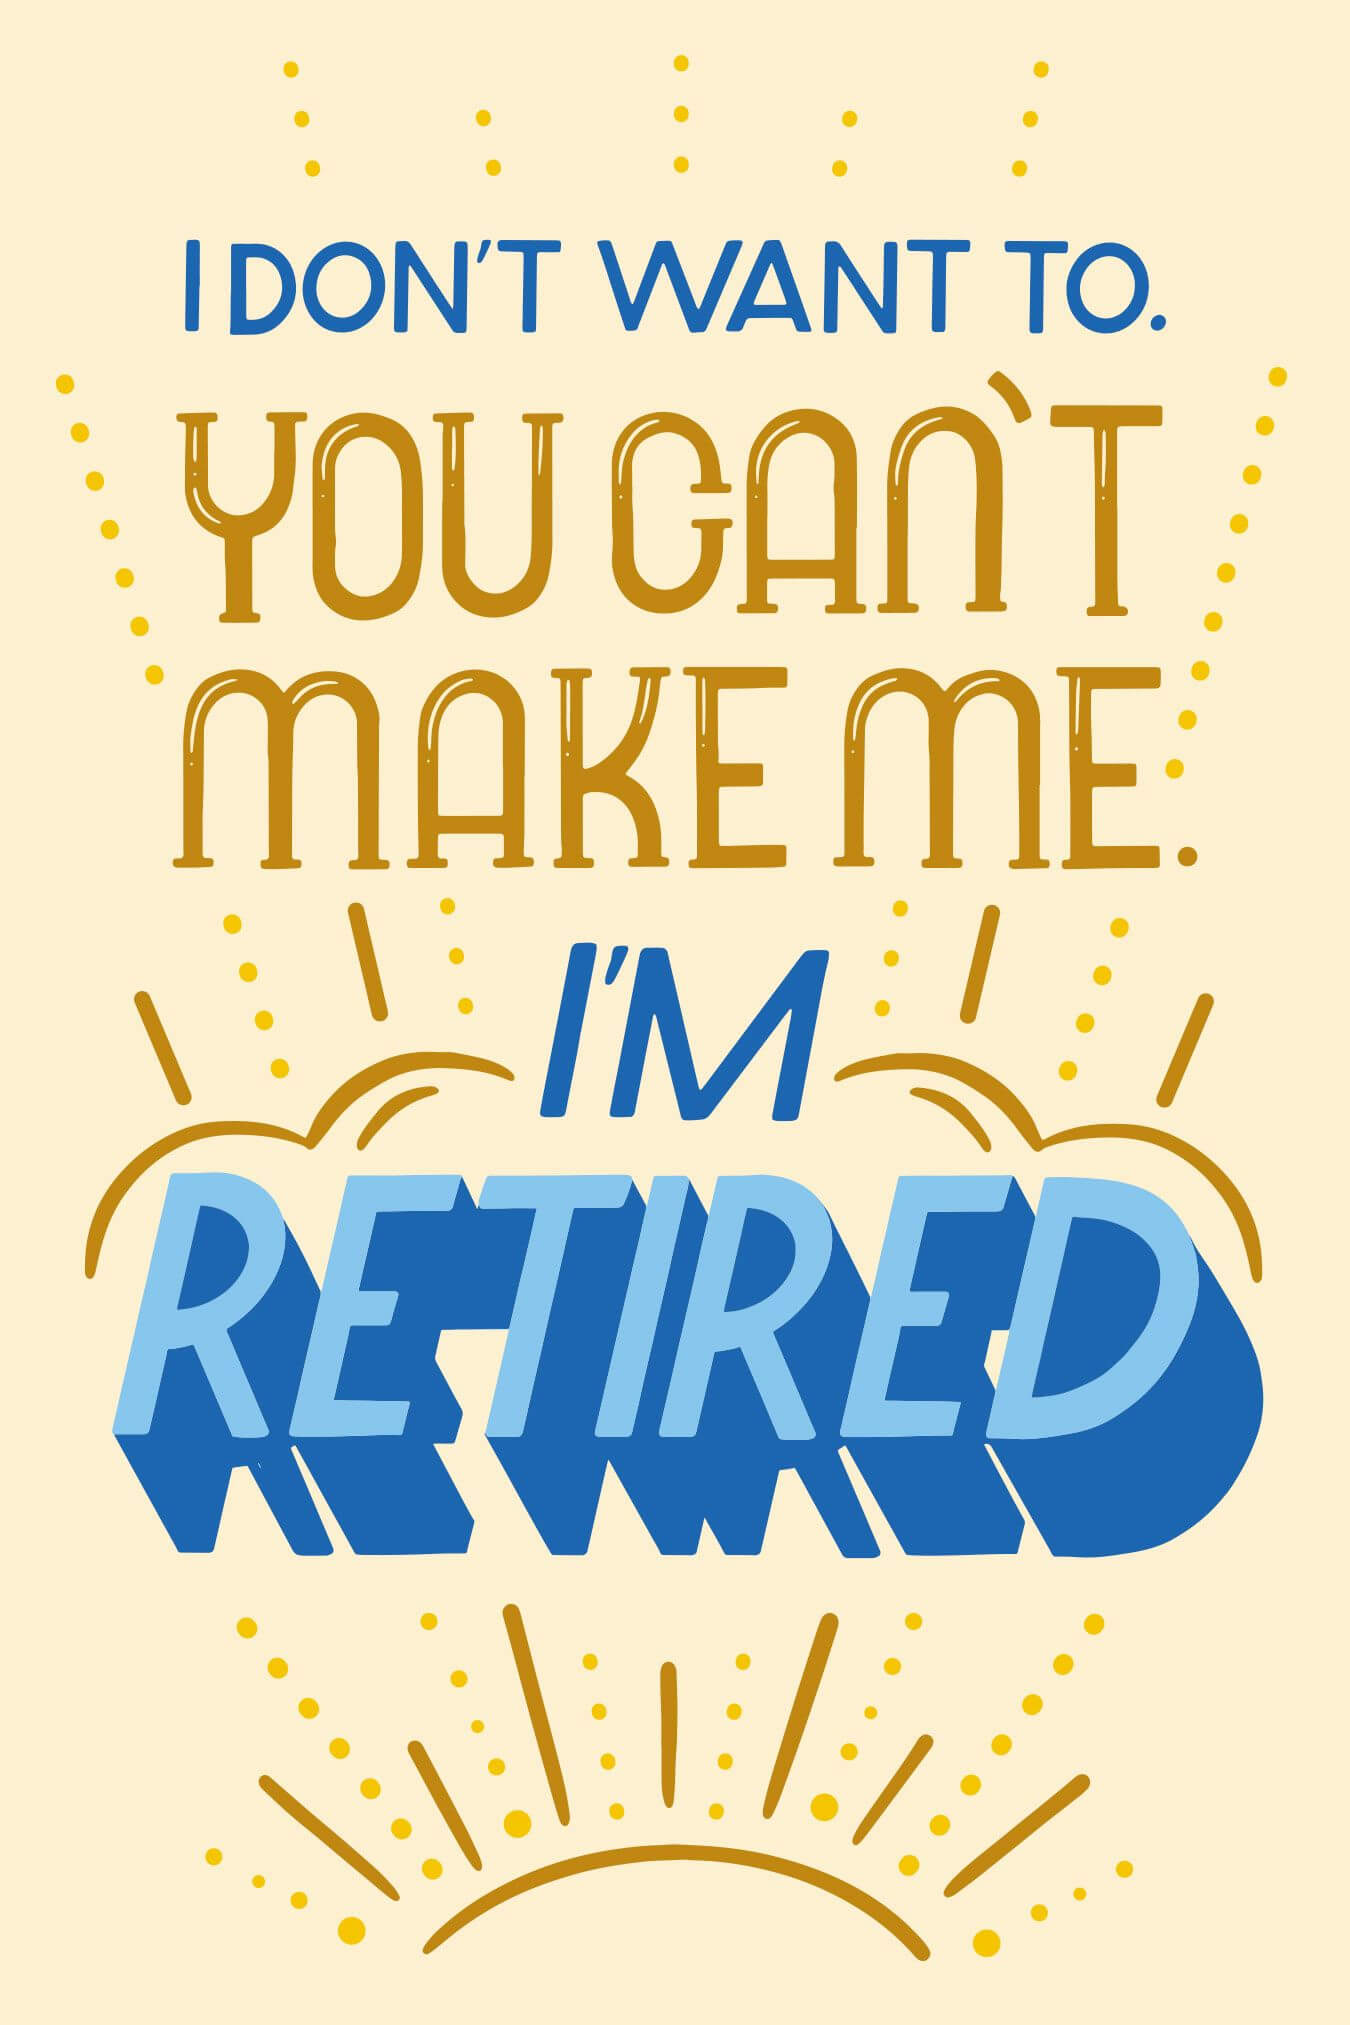 I'm Retired | Retirement Cards, Cards, Templates Printable Free Pertaining To Retirement Card Template